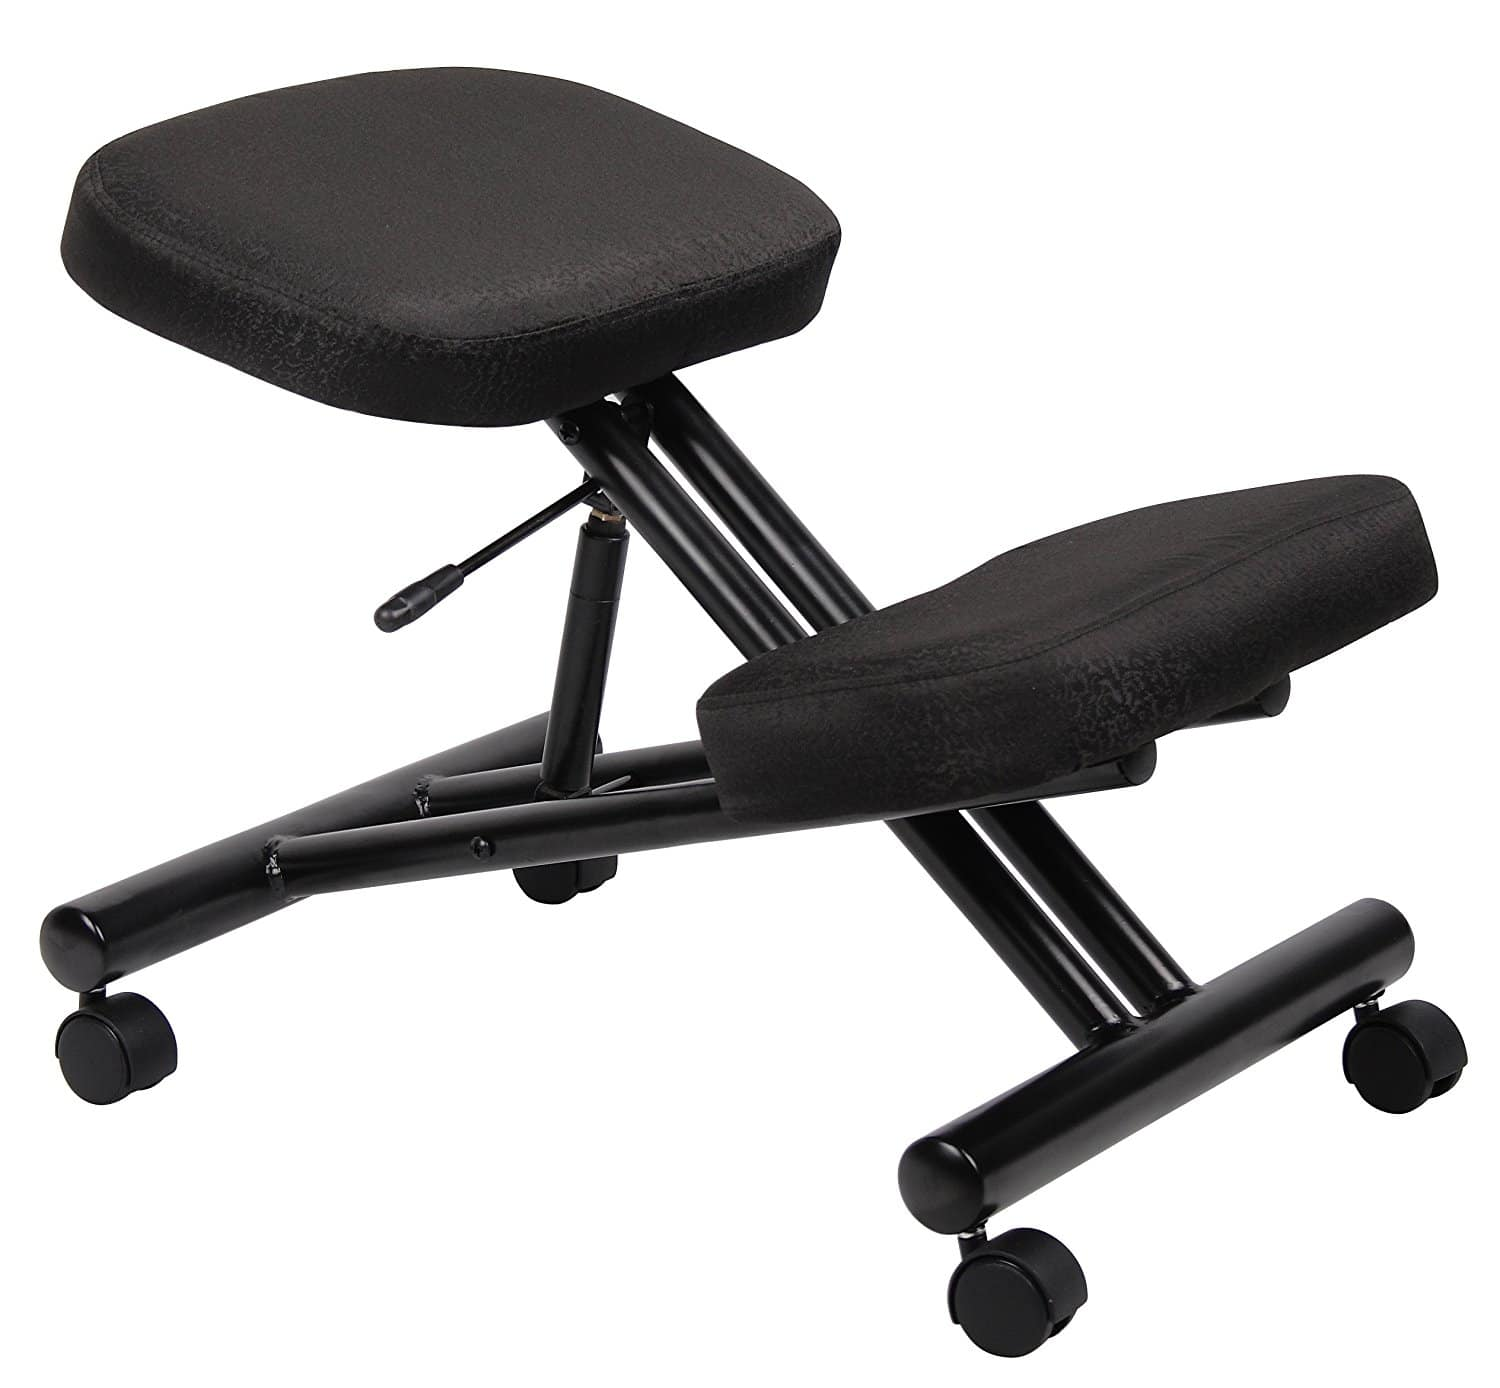 Ergonomic office chair kneeling posture - B248 By Boss Knee Posture Seat Kneeling Chair Boss Office Products B248 Ergonomic Kneeling Stool